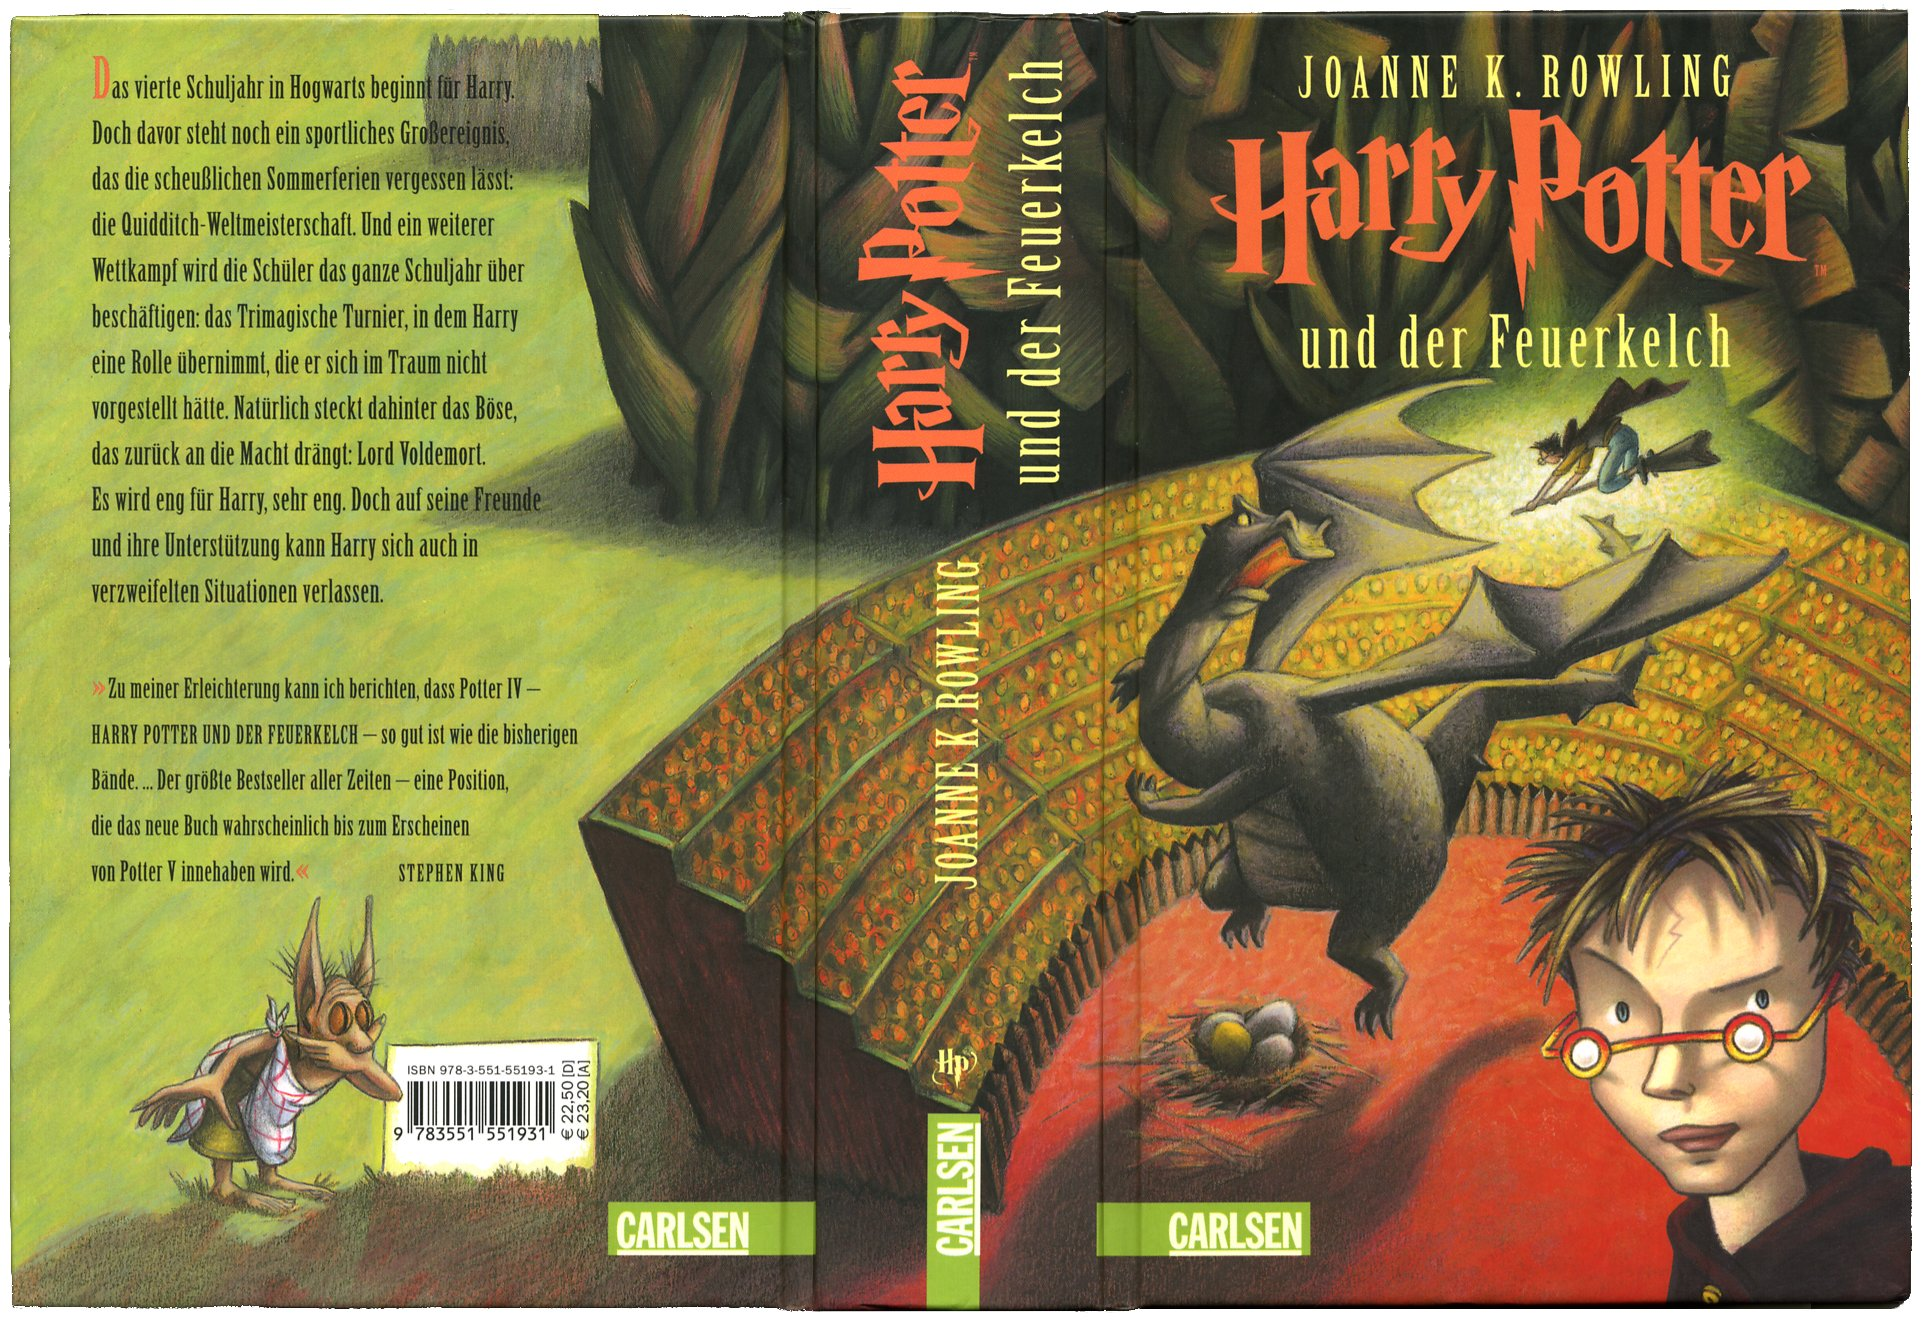 Harry Potter Book Front Cover ~ Harry potter book cover front and back pixshark